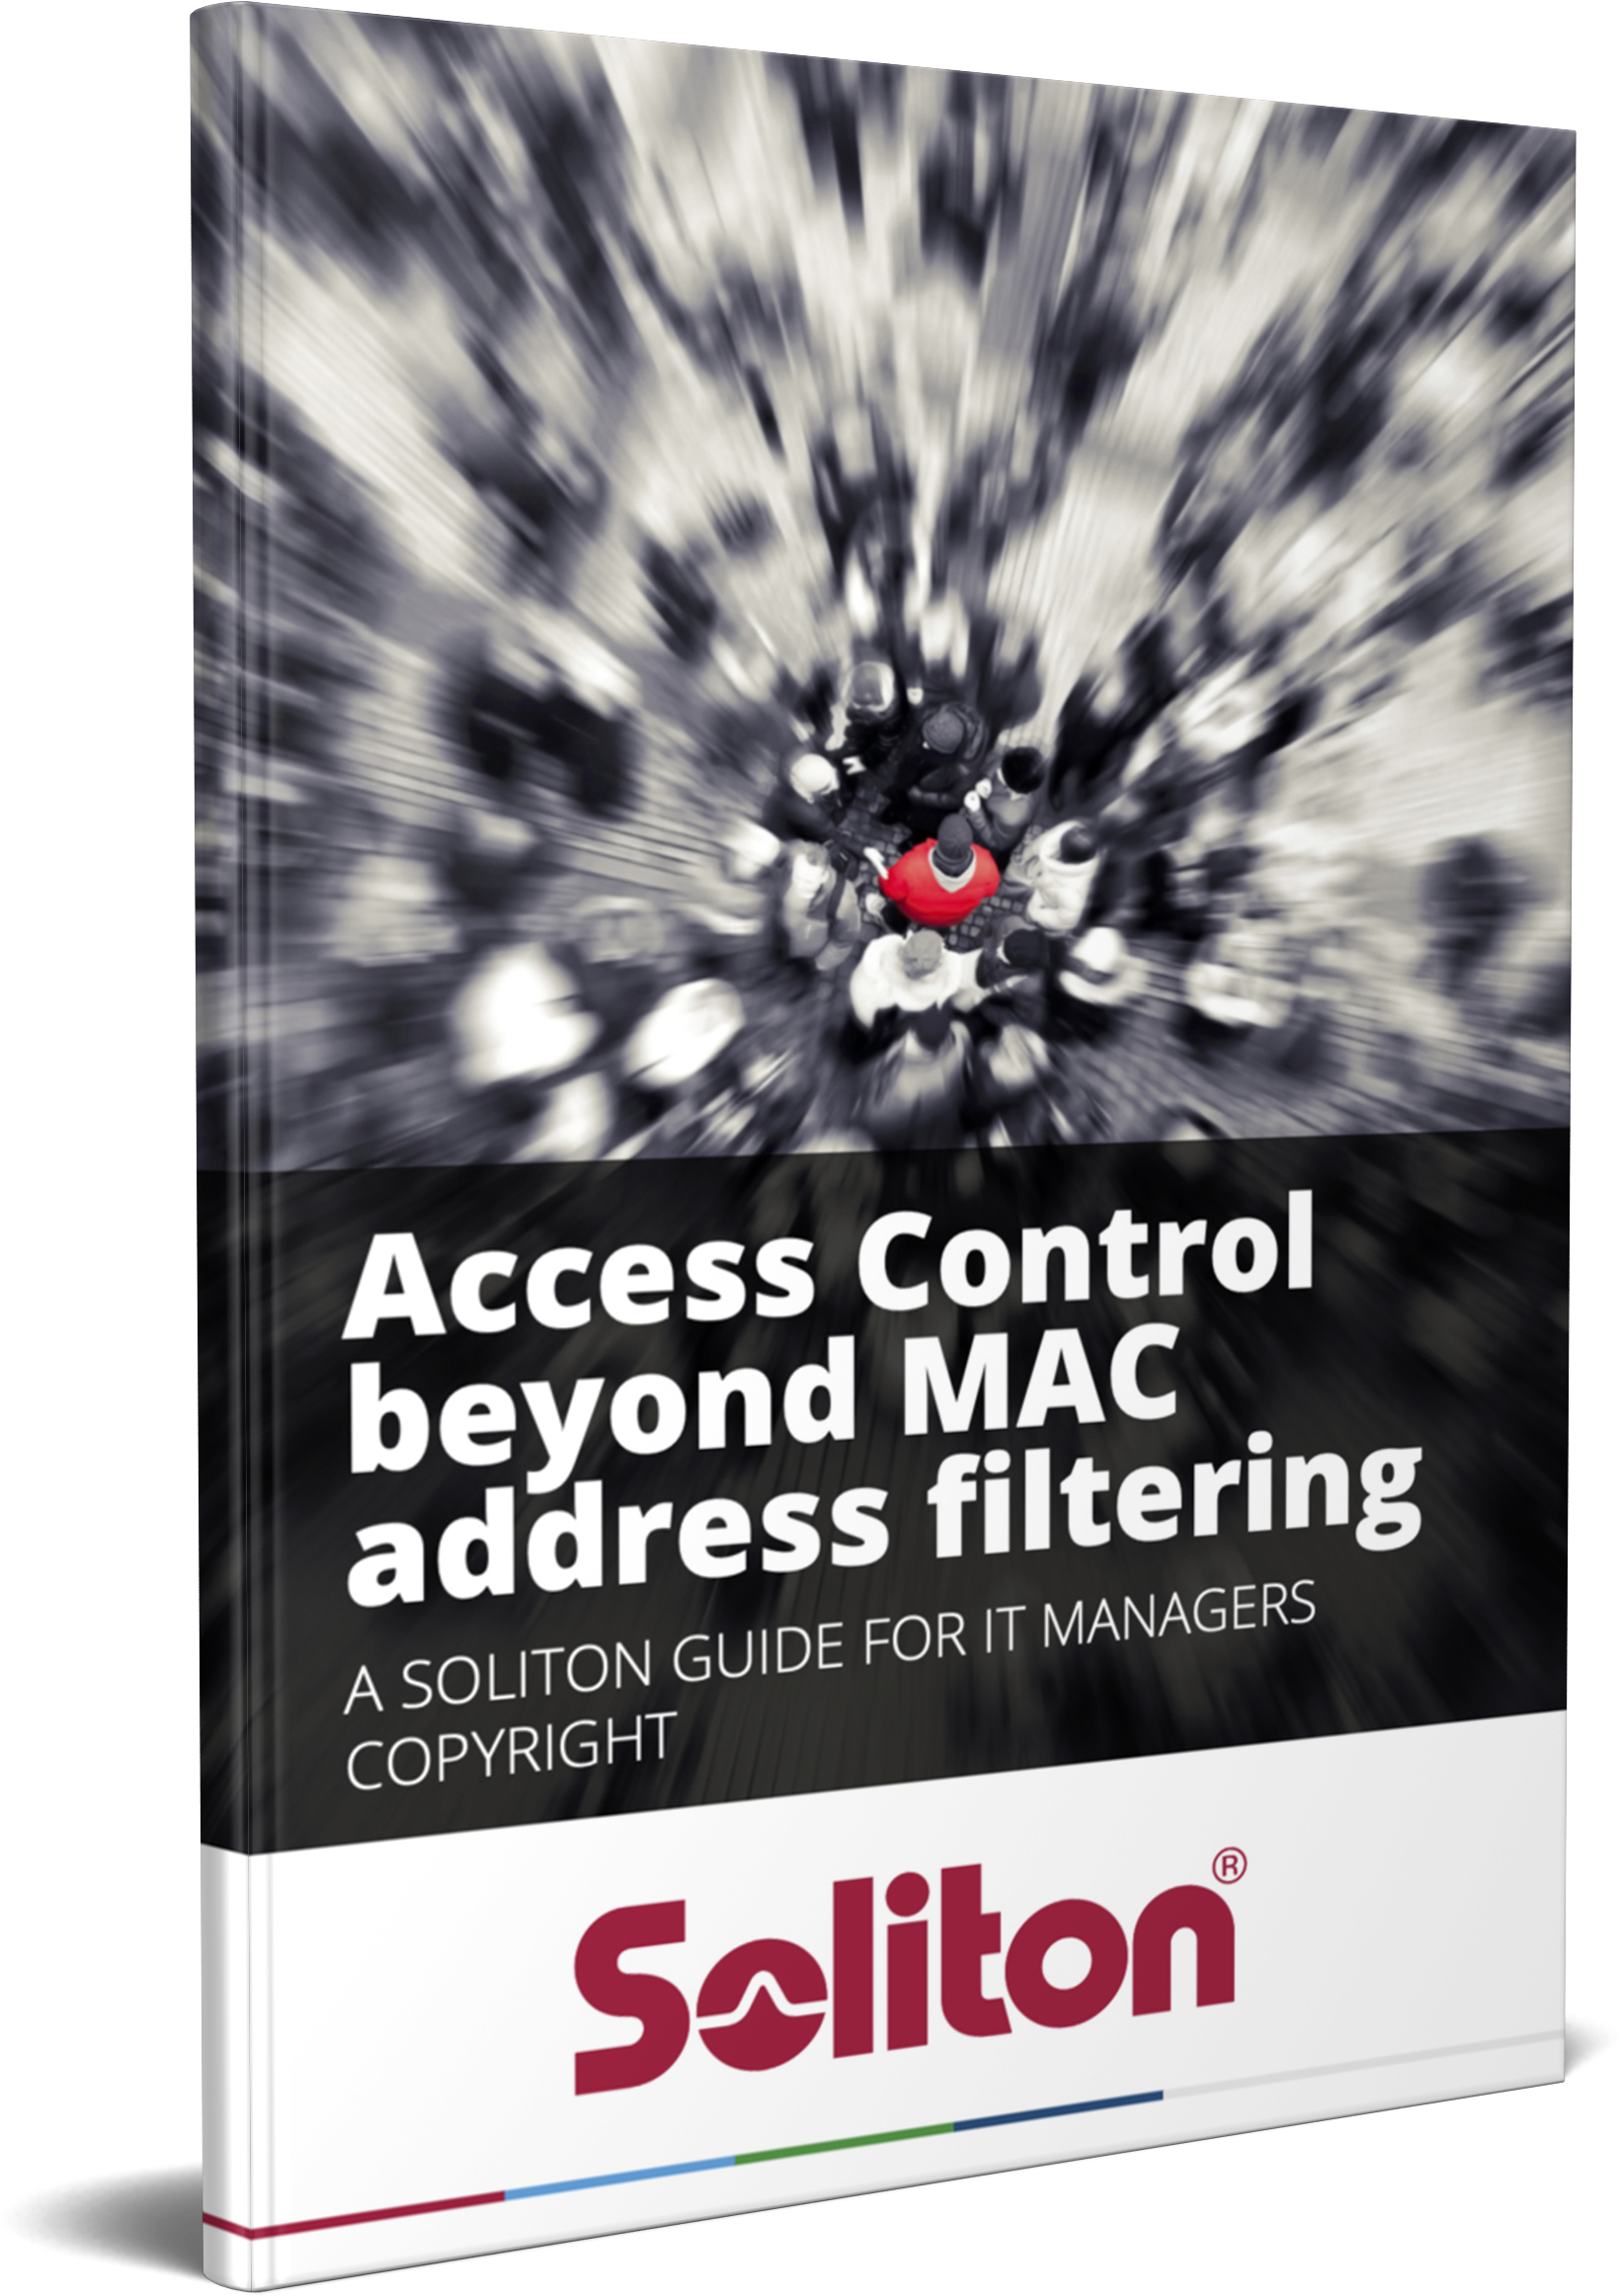 ecover Soliton Systems Whitepaper MAC